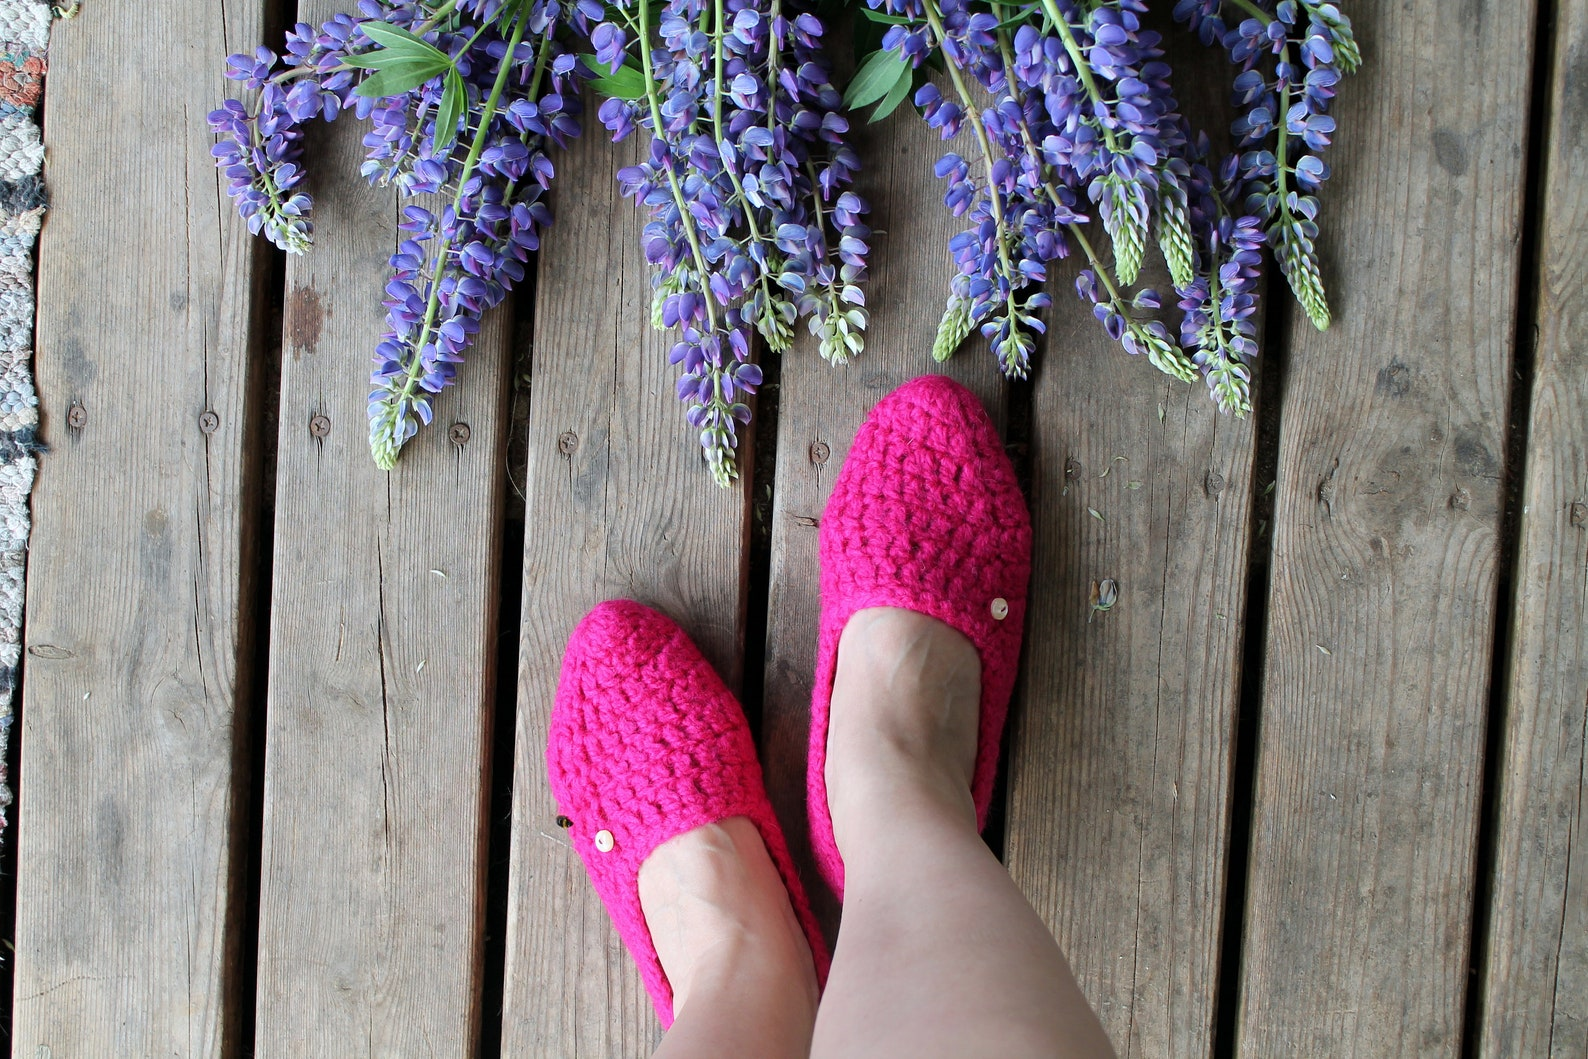 slippers crochet ballet flats knitted purple wool adult home shoes for woman pink with pearl button cozy home socks gift for her